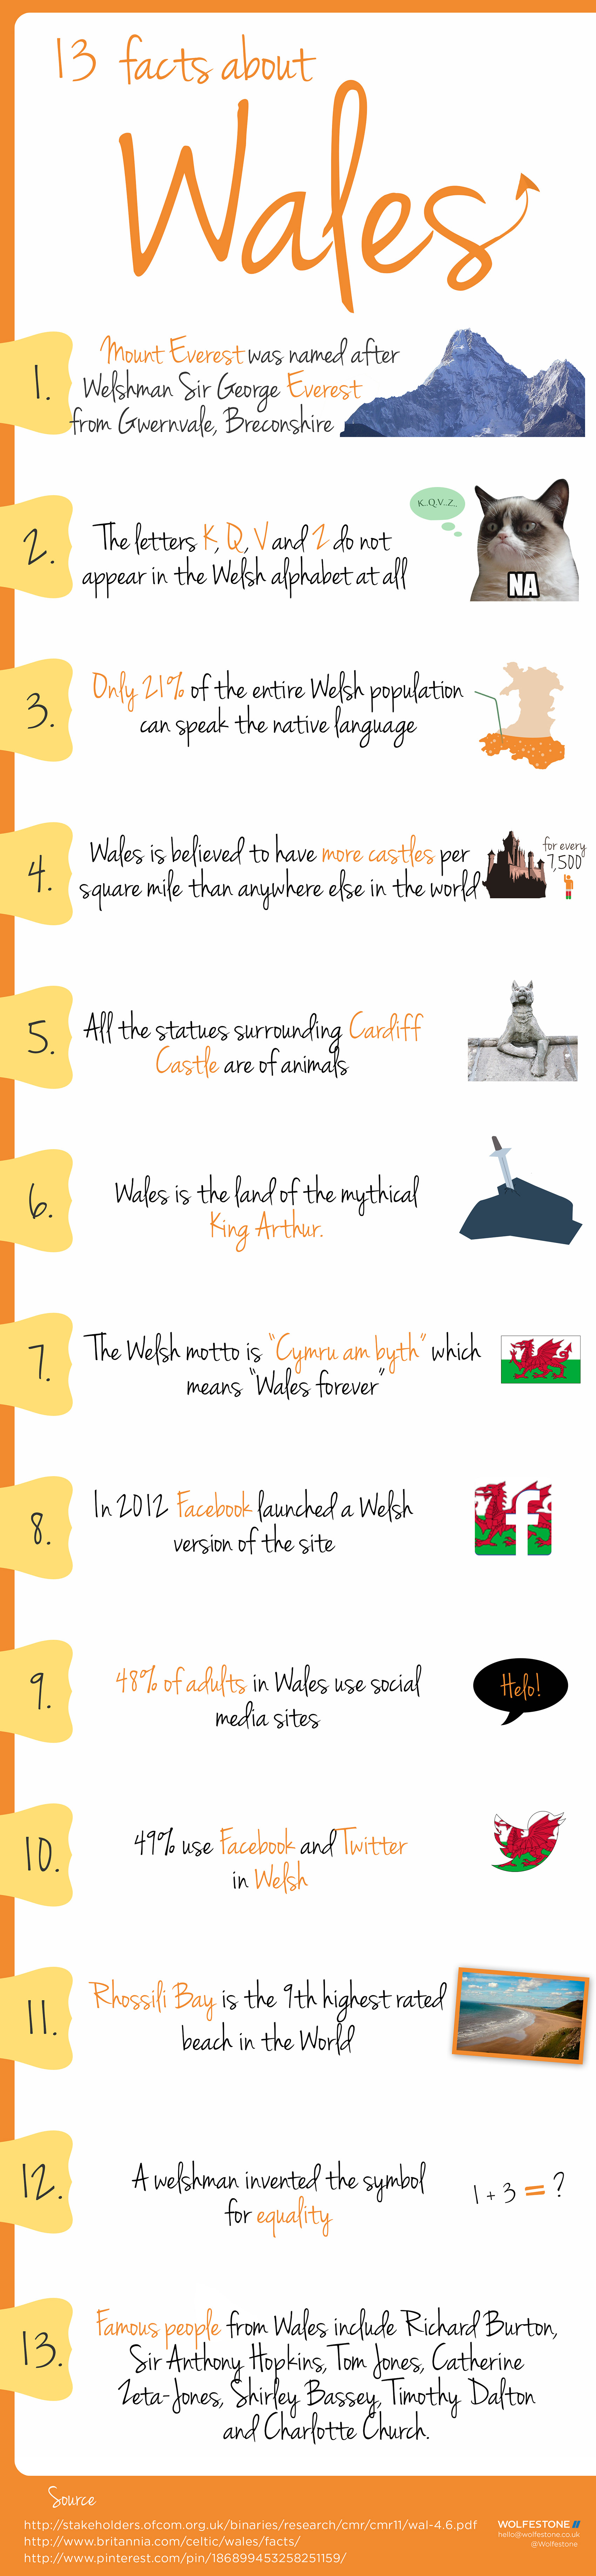 facts-about-wales-infographic-resized